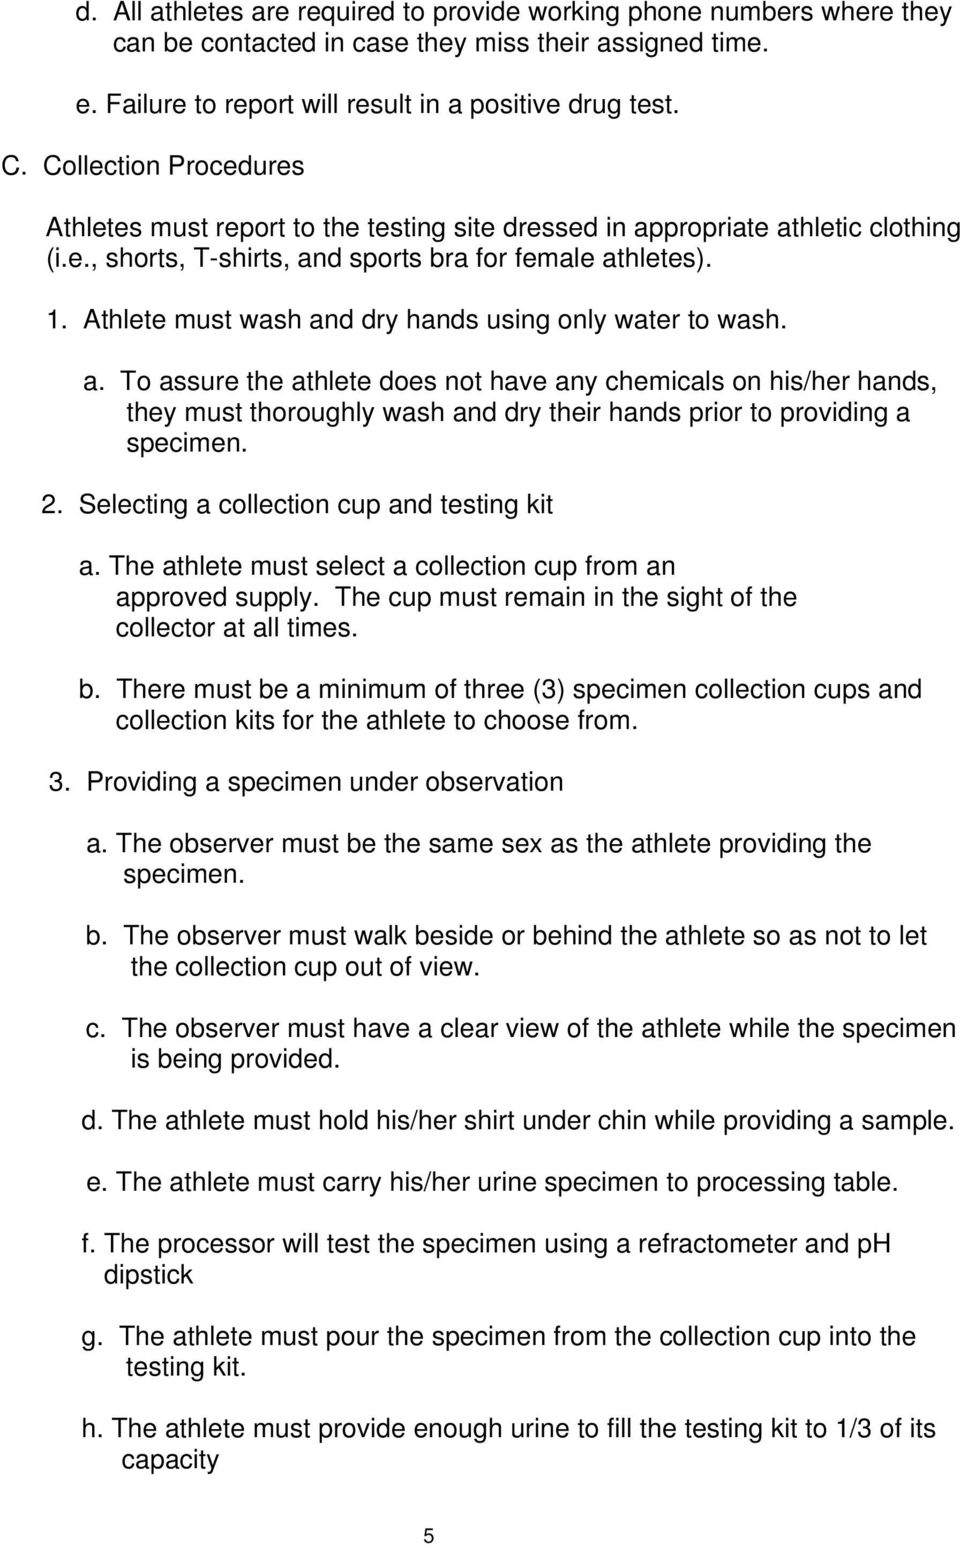 Athlete must wash and dry hands using only water to wash. a. To assure the athlete does not have any chemicals on his/her hands, they must thoroughly wash and dry their hands prior to providing a specimen.